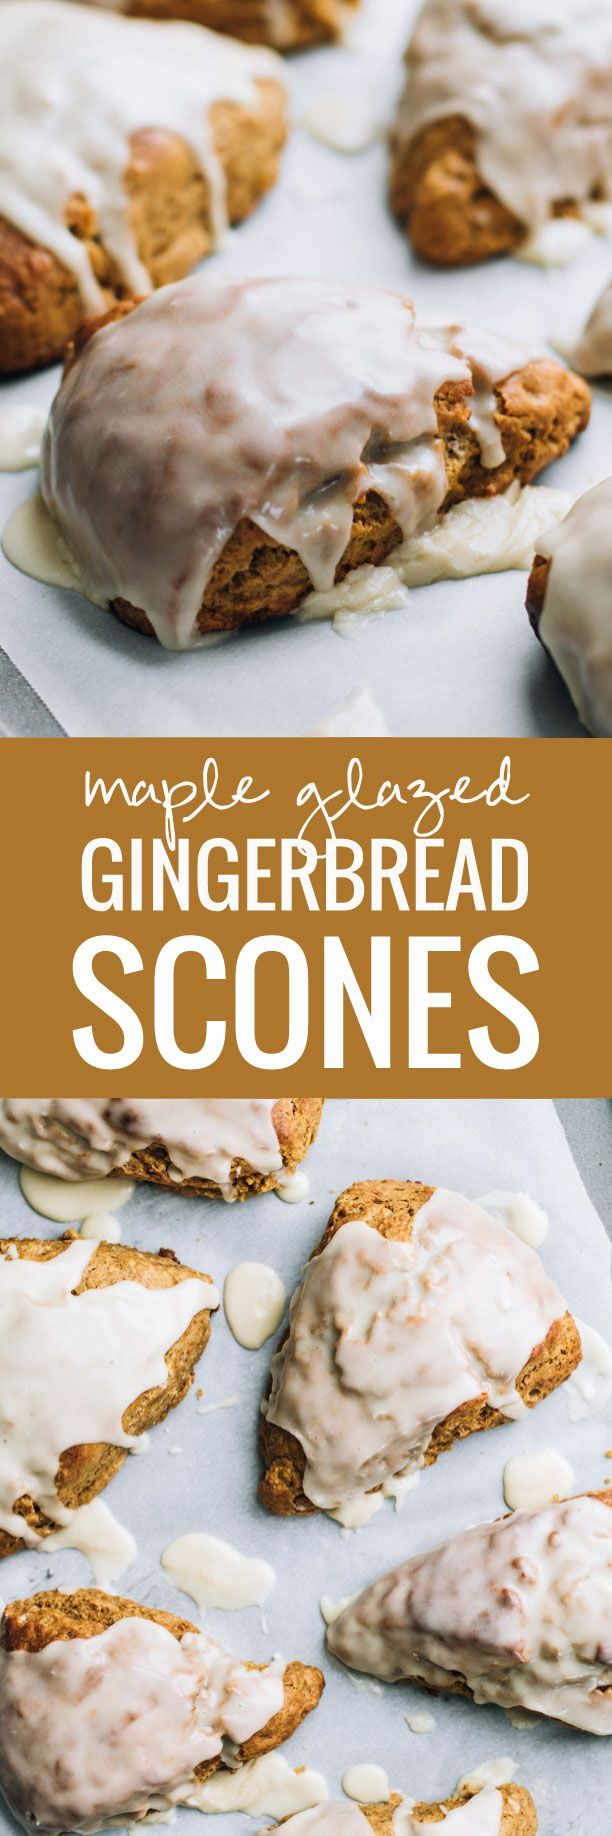 nike shoe Maple Glazed Gingerbread Scones   the most cozy winter breakfast treat  especially perfect with a mug of hot coffee